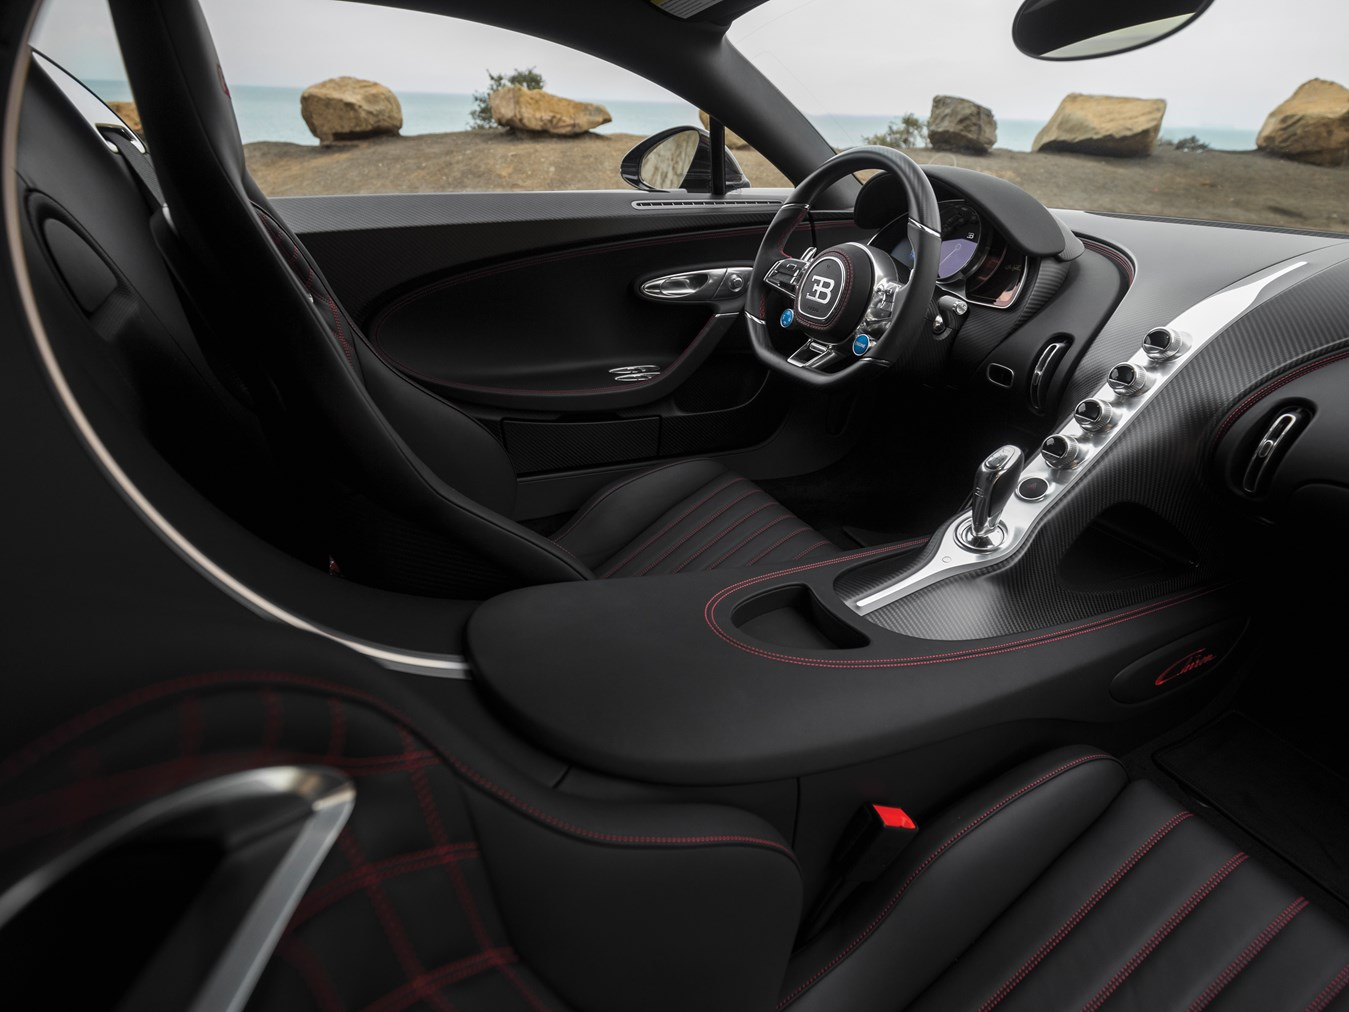 First Us Spec Bugatti Chiron Heads To Auction Supercar